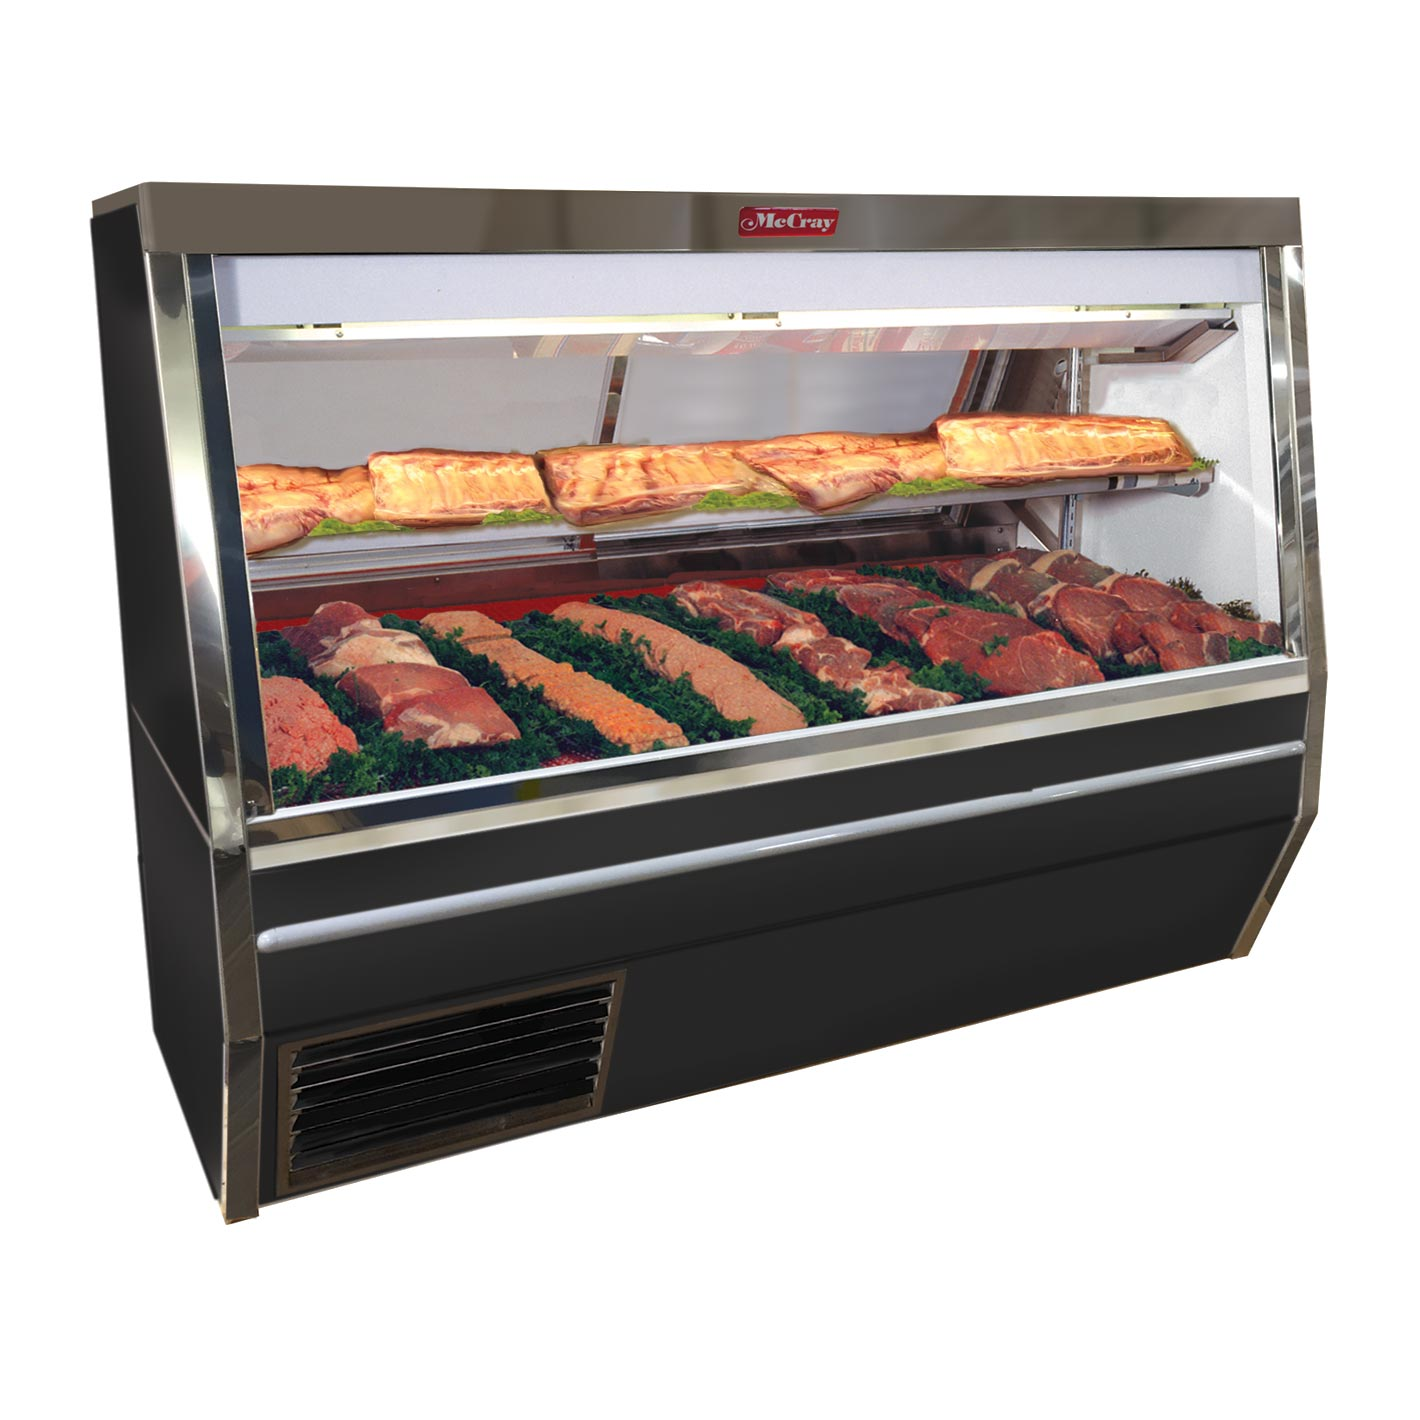 Howard-McCray SC-CMS34N-12-BE-LED display case, red meat deli